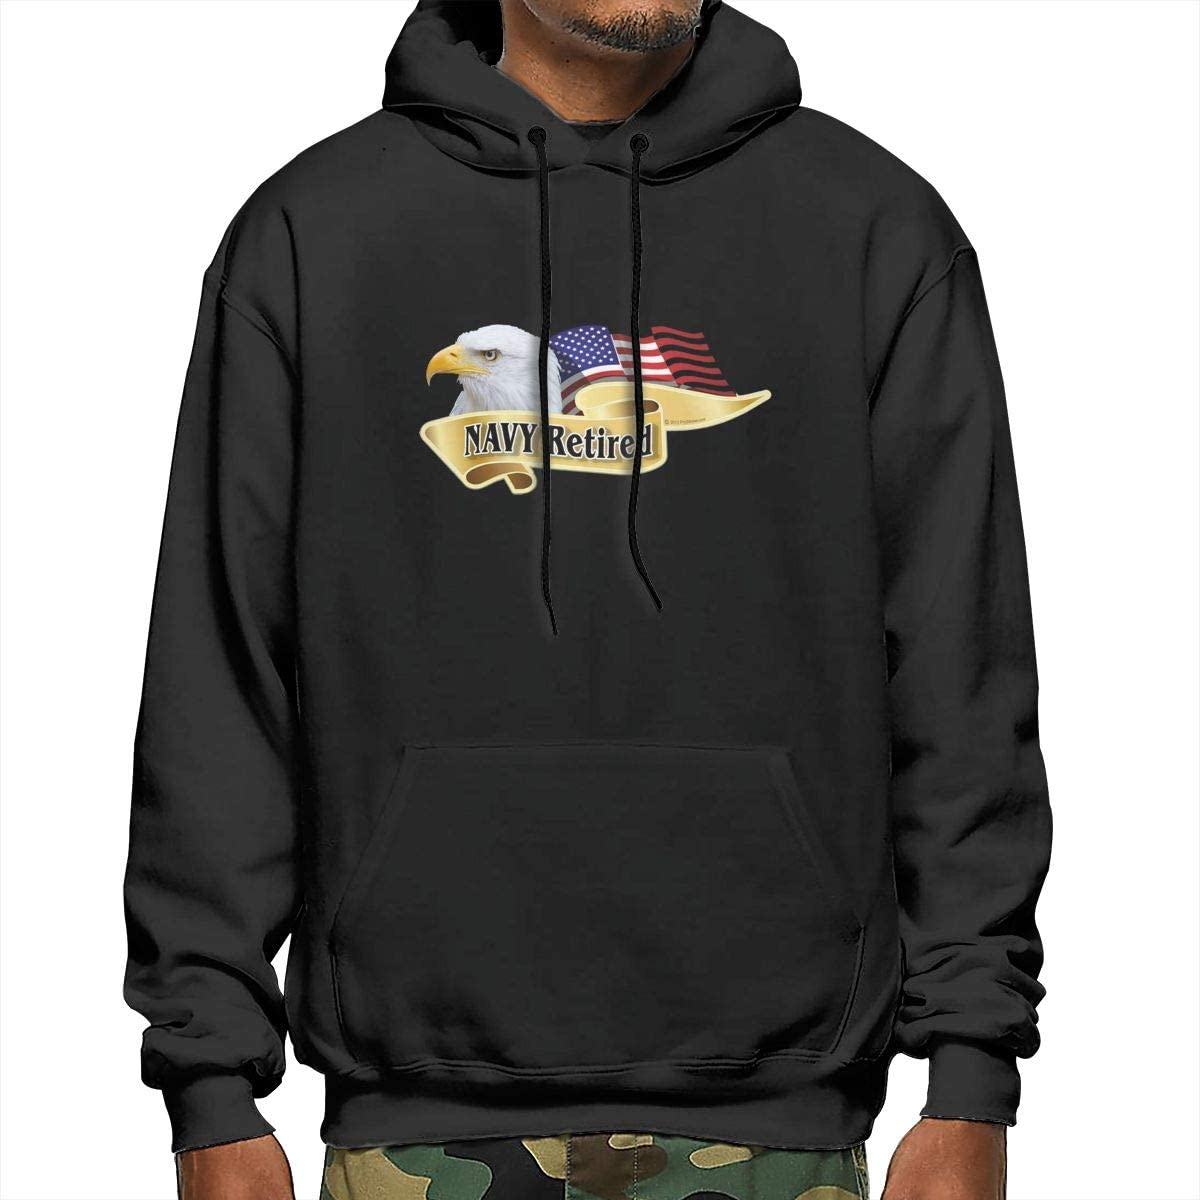 American Pride Series Navy Retired Bald Eagle Mens Hooded Sweatshirt